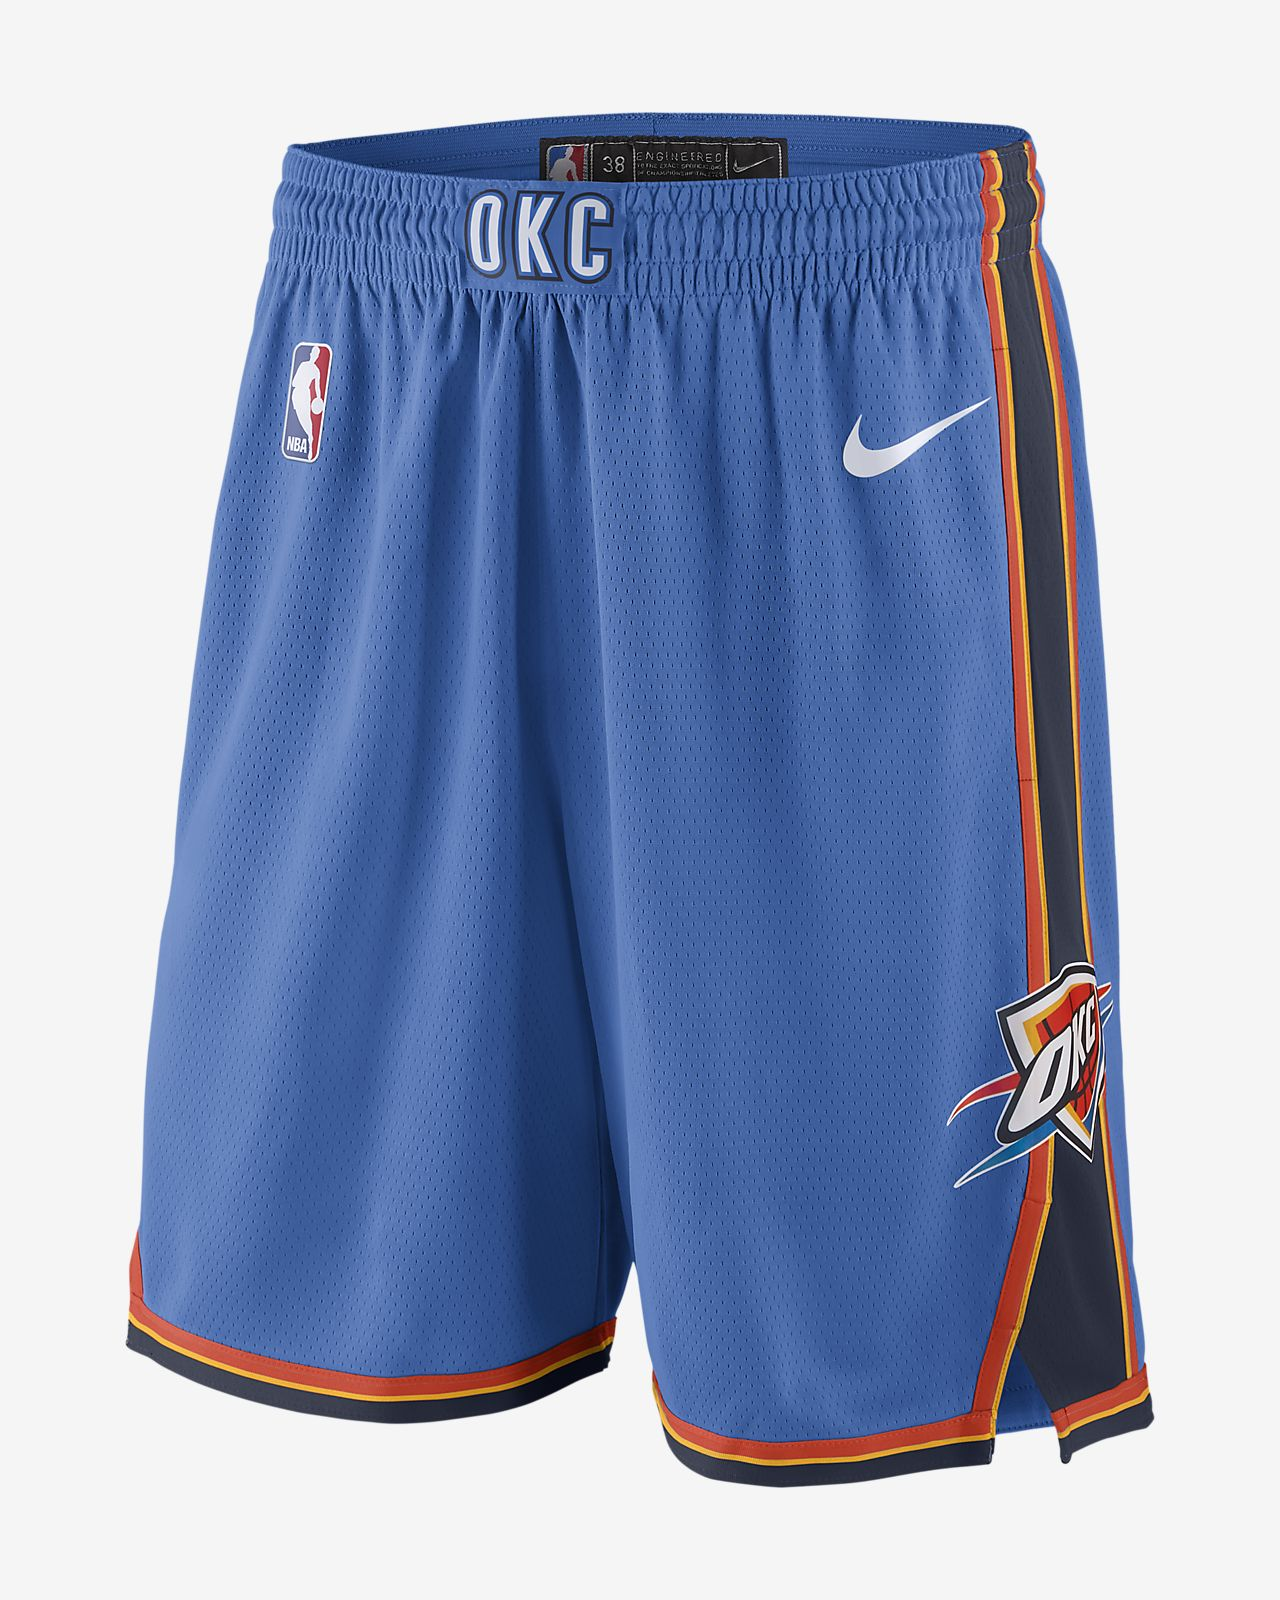 Nike Icon Nba Edition City Swingman Oklahoma Shorts Fr Thunder HSXwAqnxUR